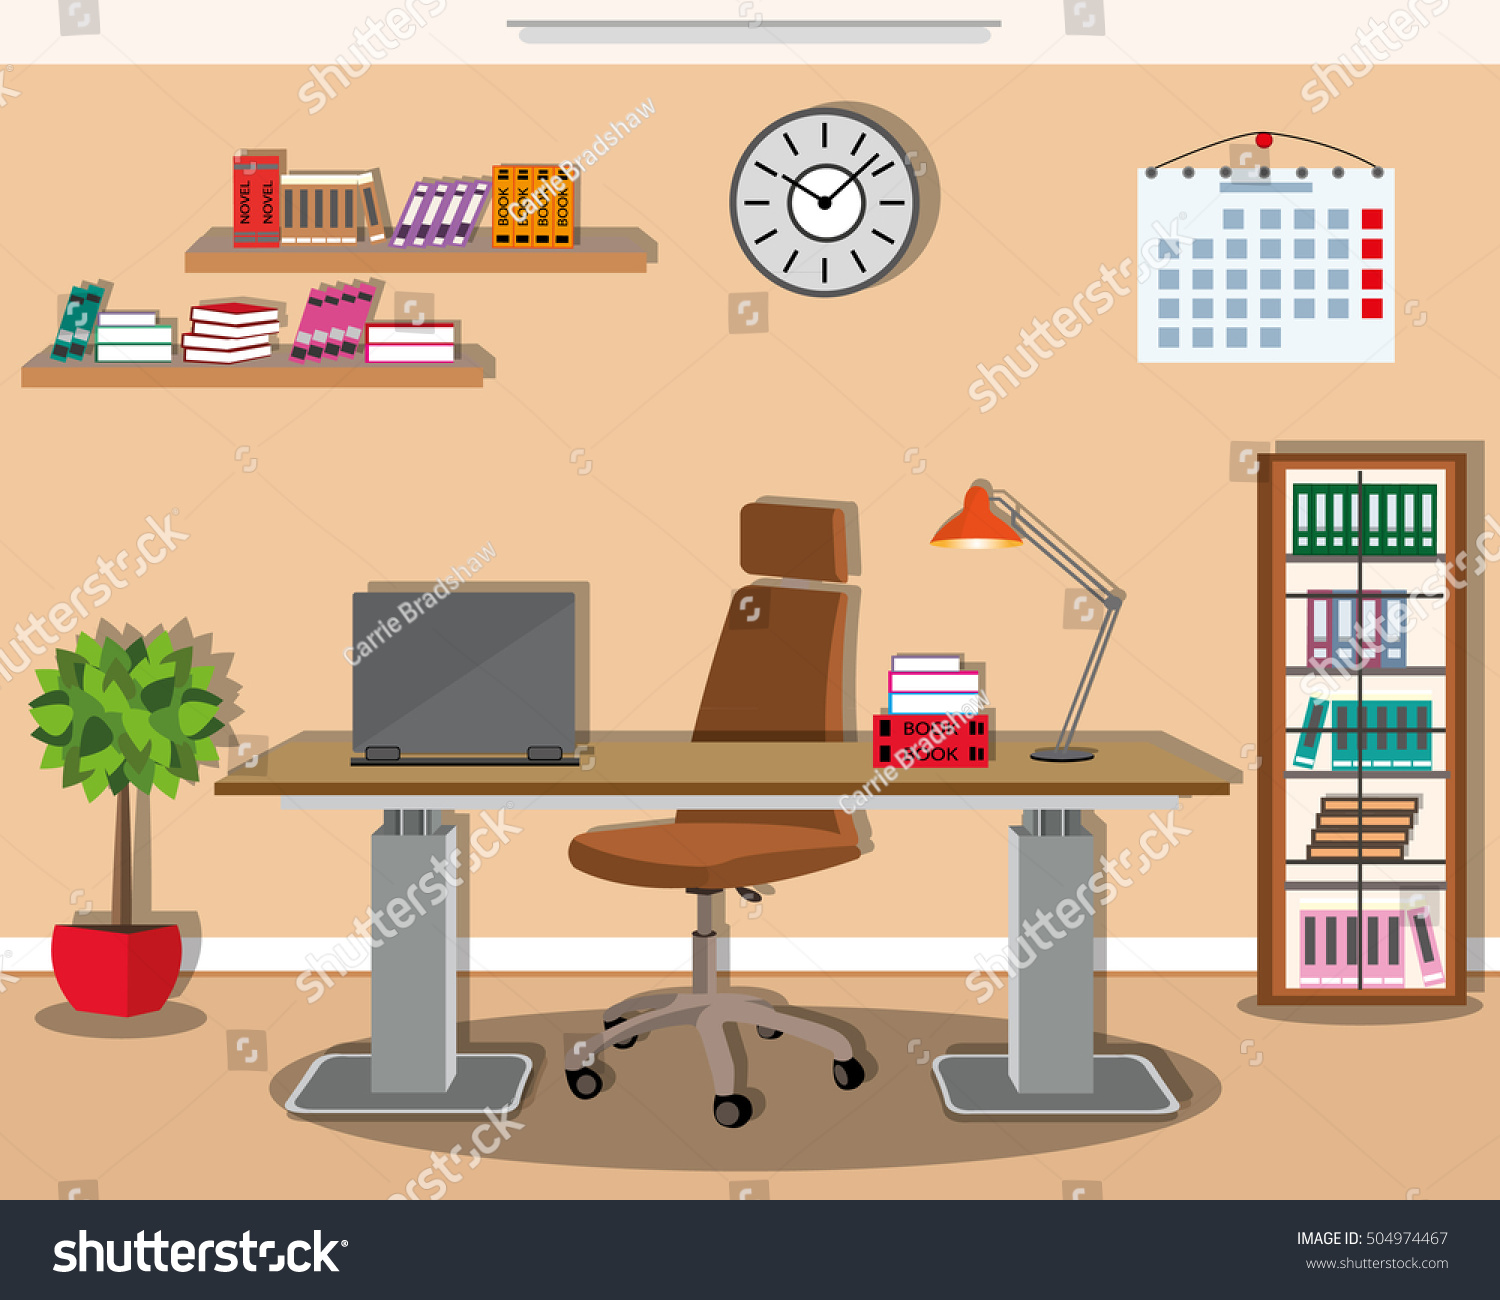 Modern office interior design with stylish furniture  Comfortable working  place   desktop chair. Modern Office Interior Design Stylish Furniture Stock Vector